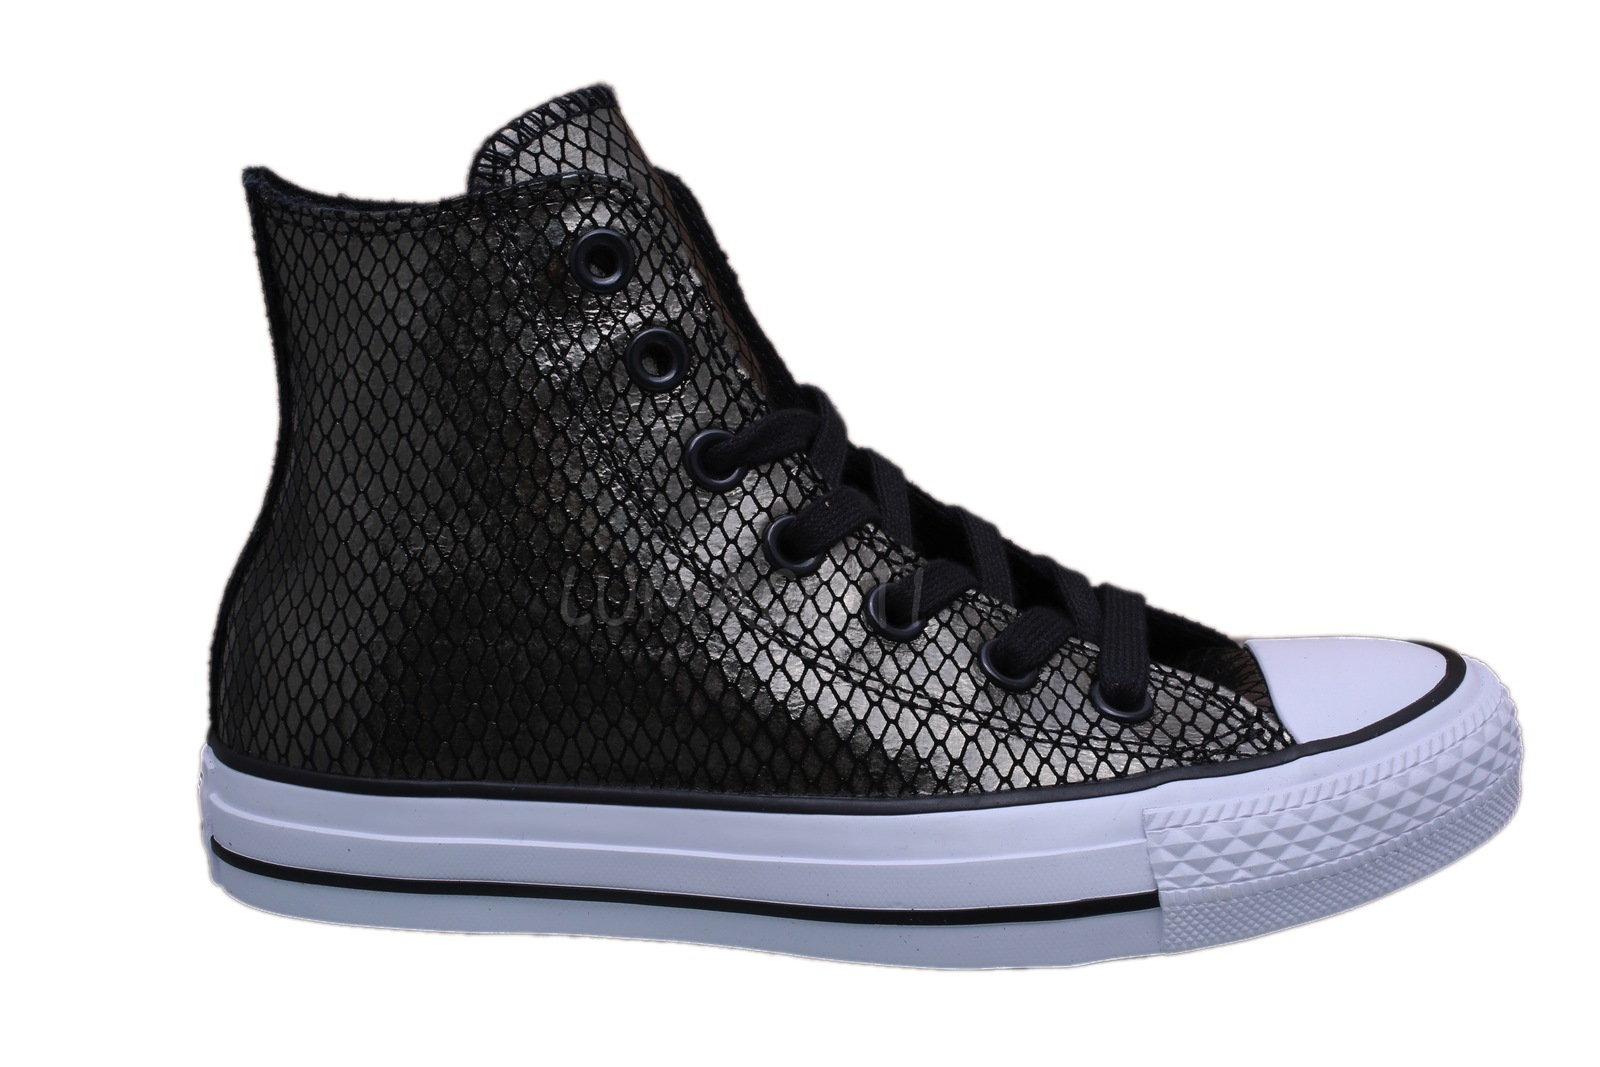 Womens Converse Chuck Taylor All Star Black/White Hi Top Sneakers 555966C